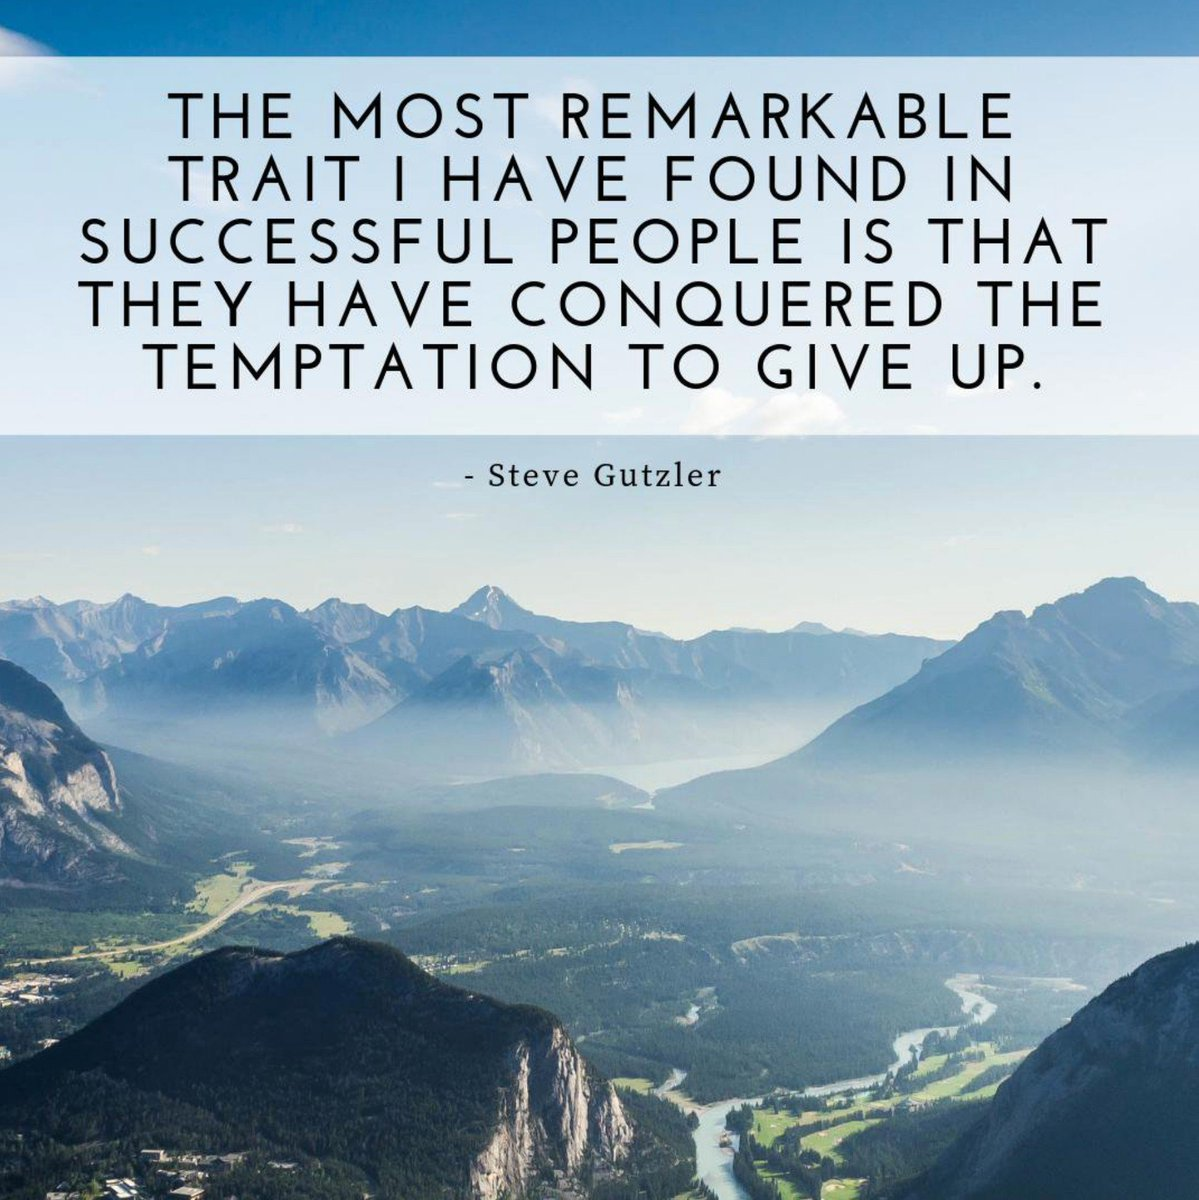 The most remarkable trait I have found in successful people is that they have conquered the temptation to give up.   #leadership #success #leaders #motivation #perseverance https://t.co/k6DnHSIGge